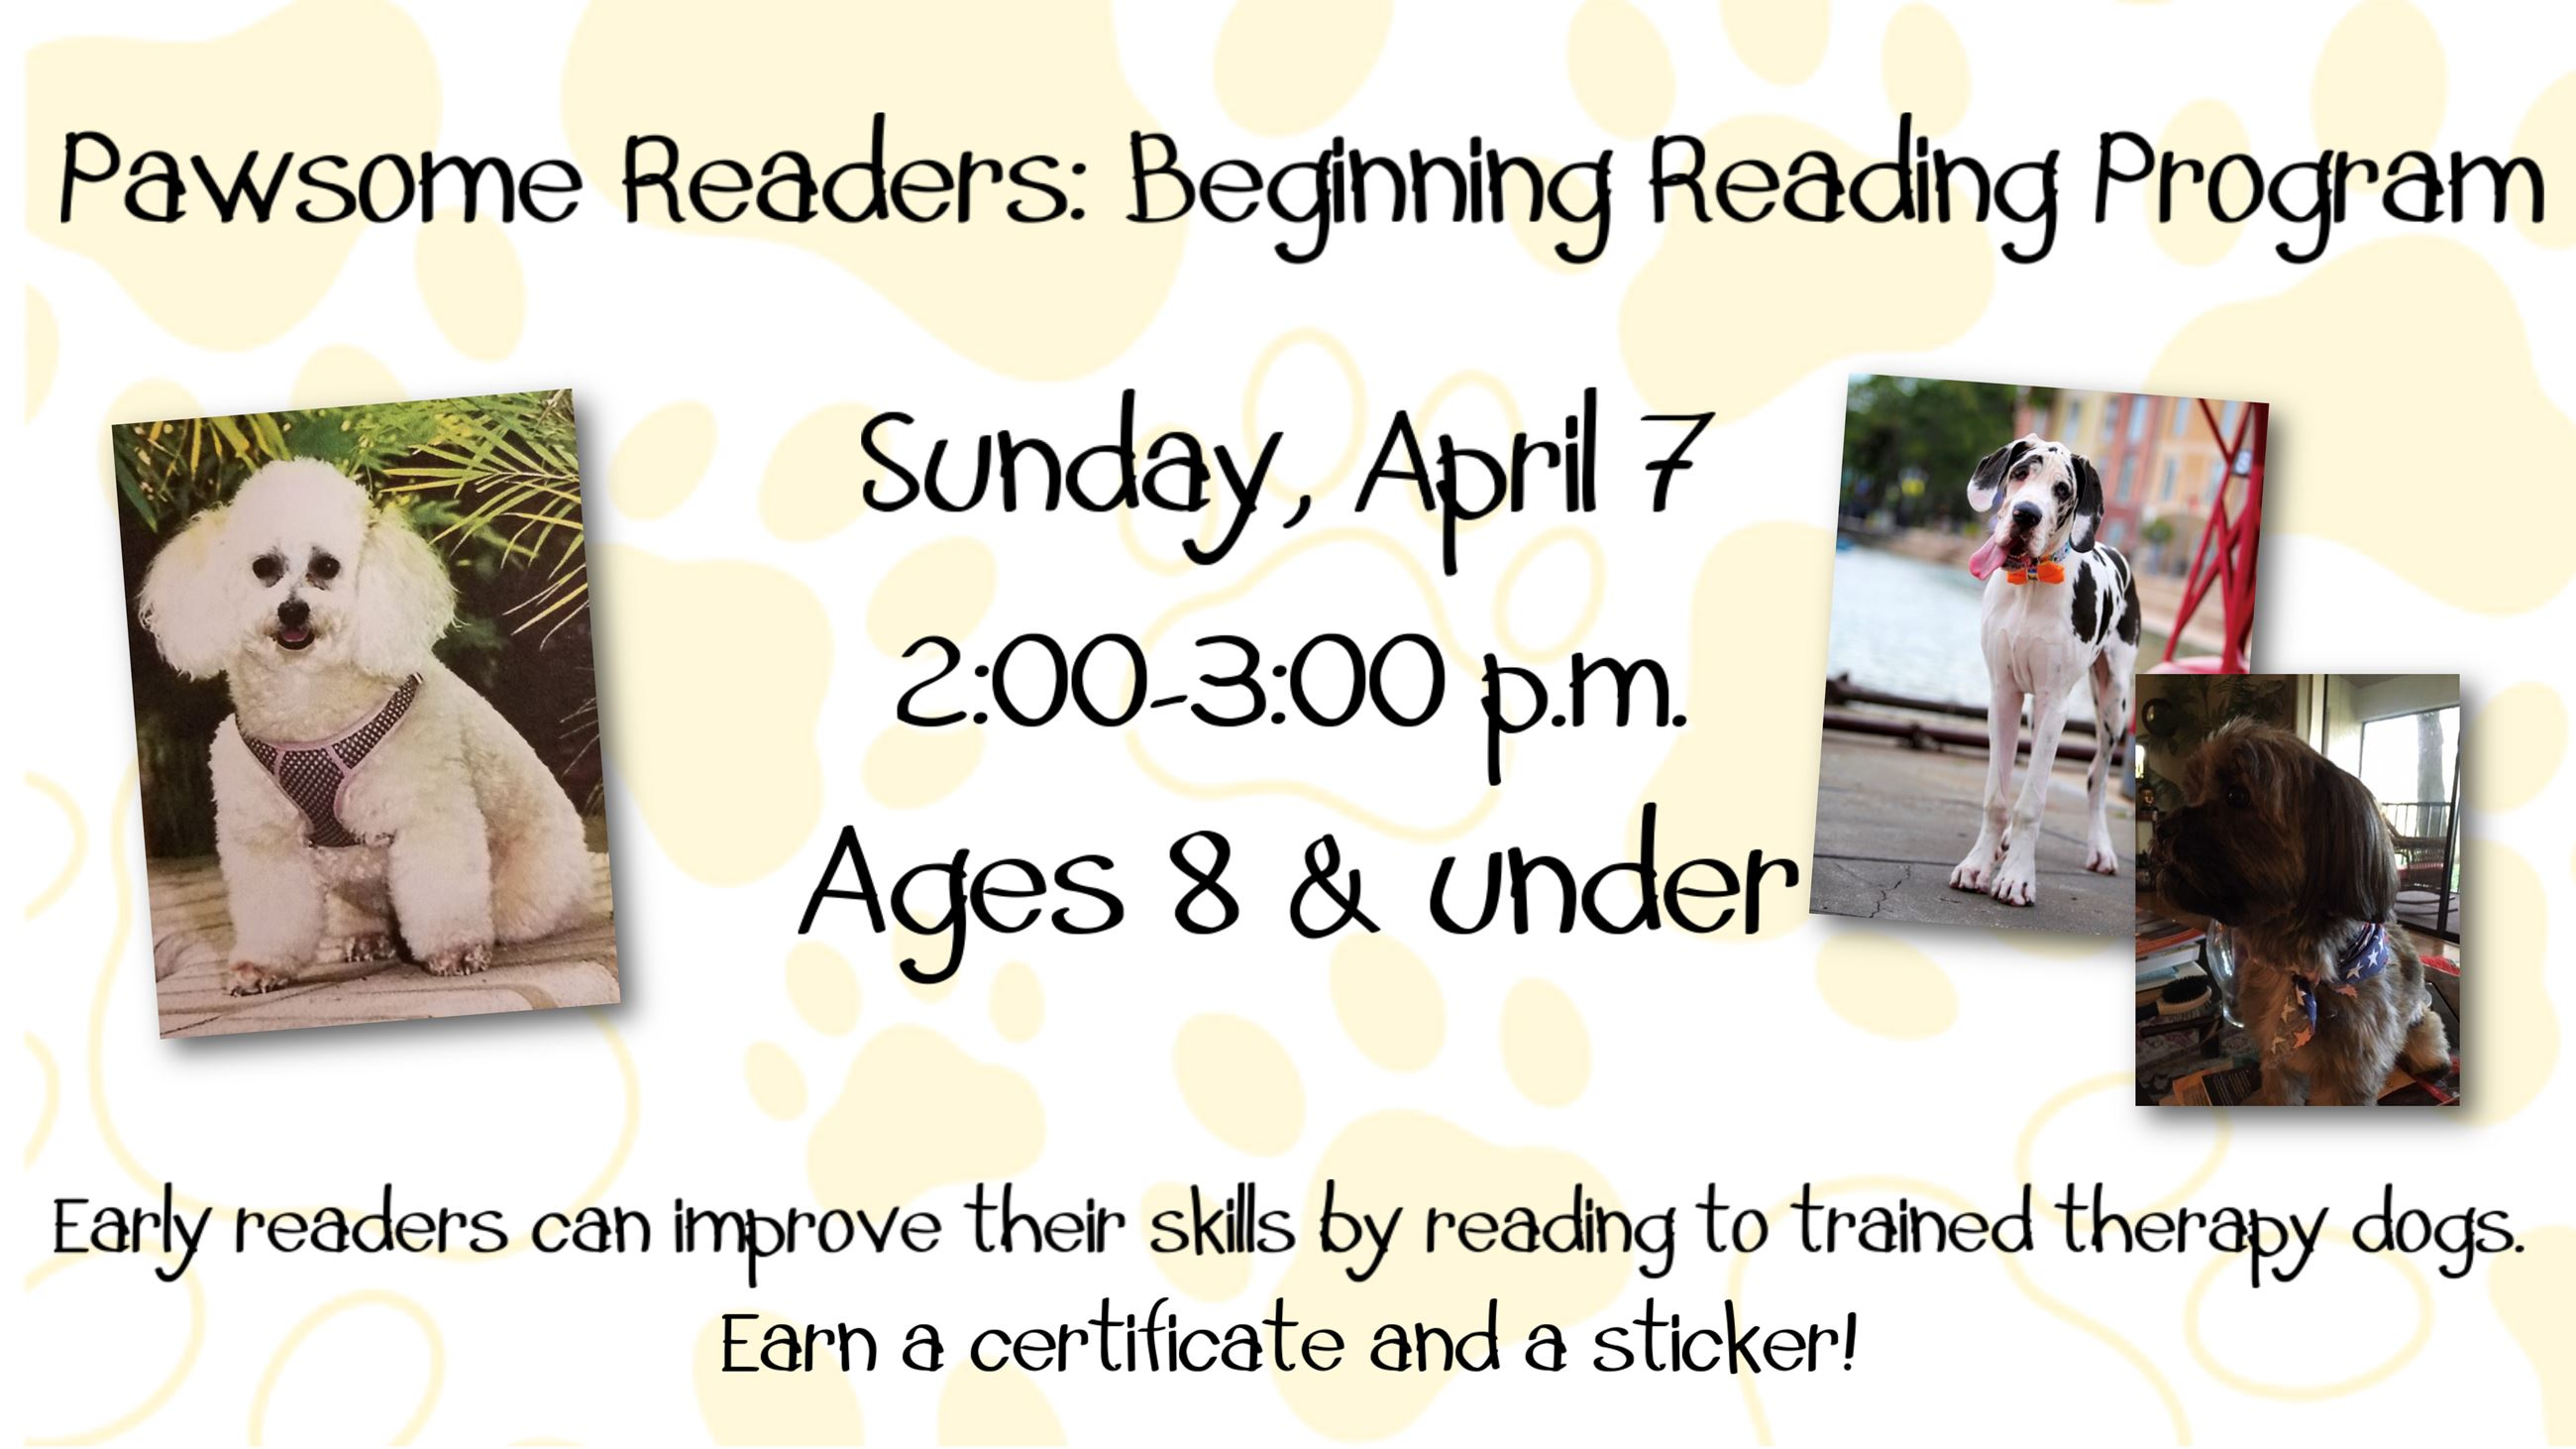 Pawsome Readers. April 7, 2 to 3 p.m. Ages 8 & under.